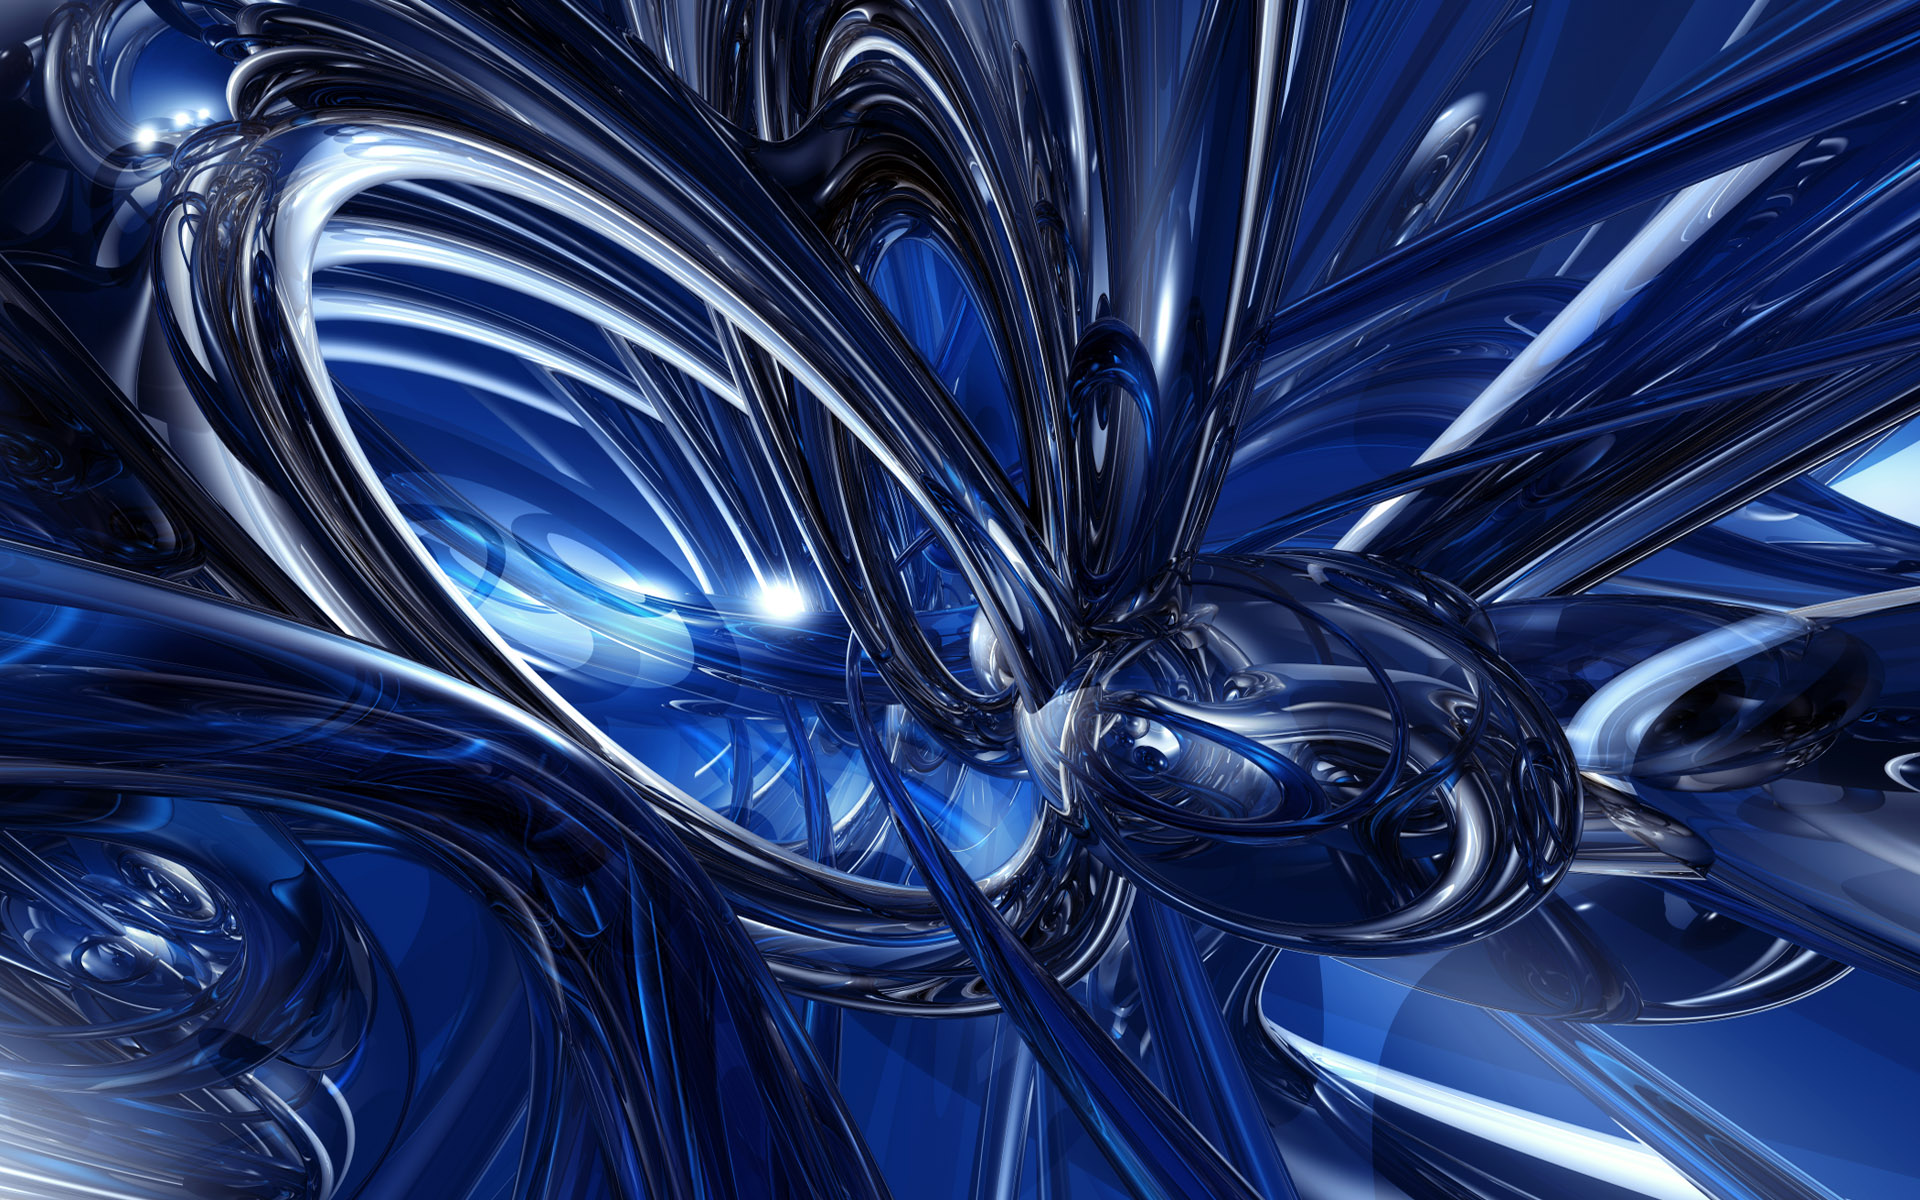 fluid abstract 壁紙画像 pchdwallpaper